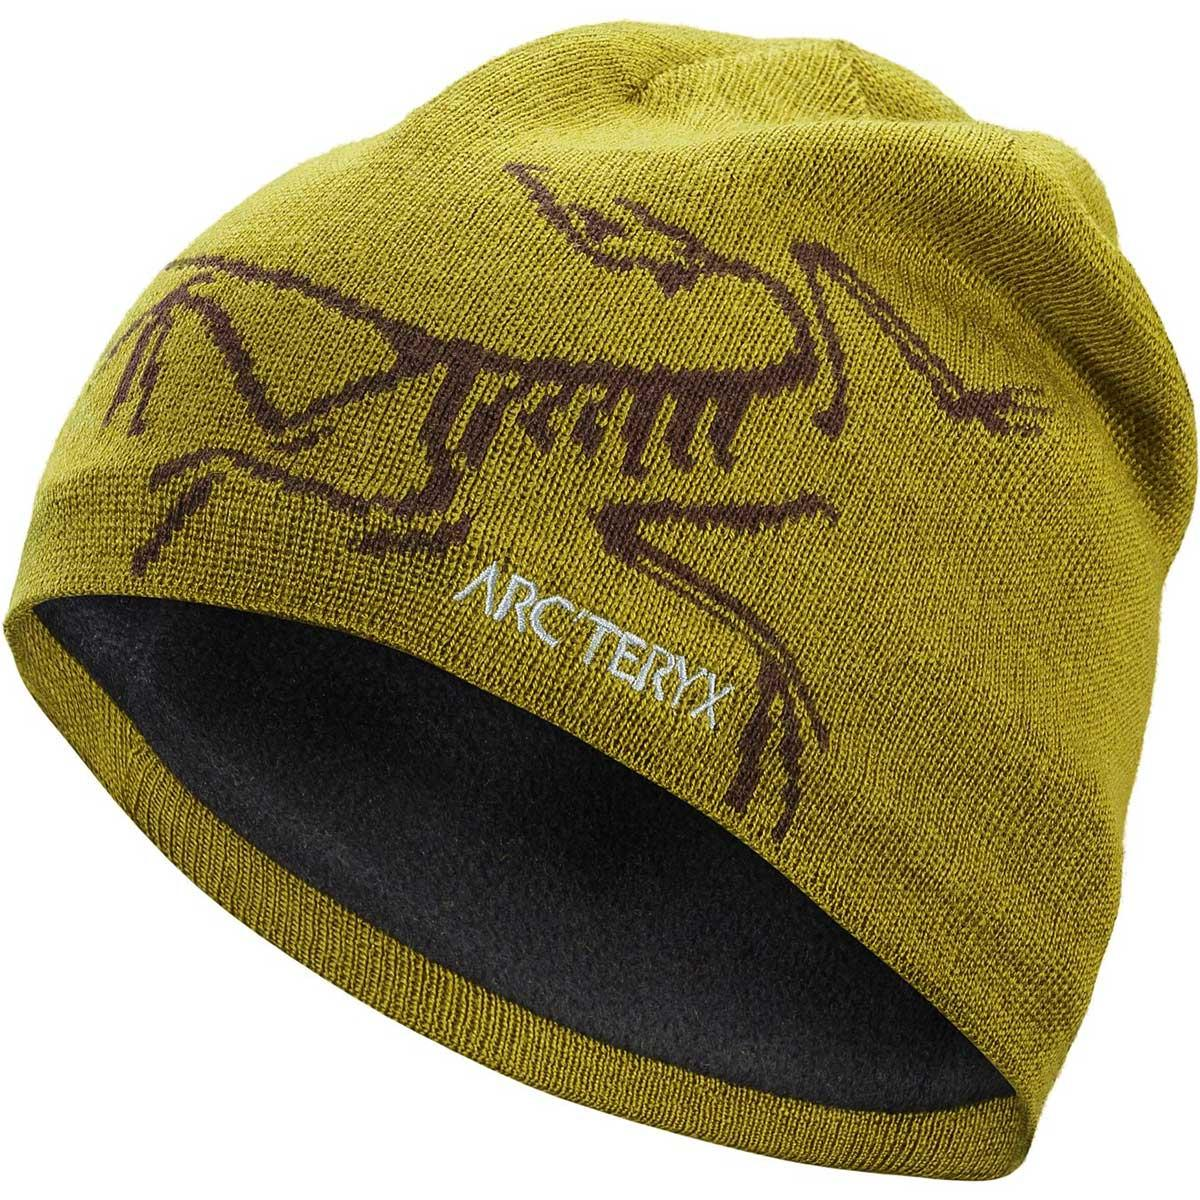 Arcteryx Bird Head Toque in Yukon main view